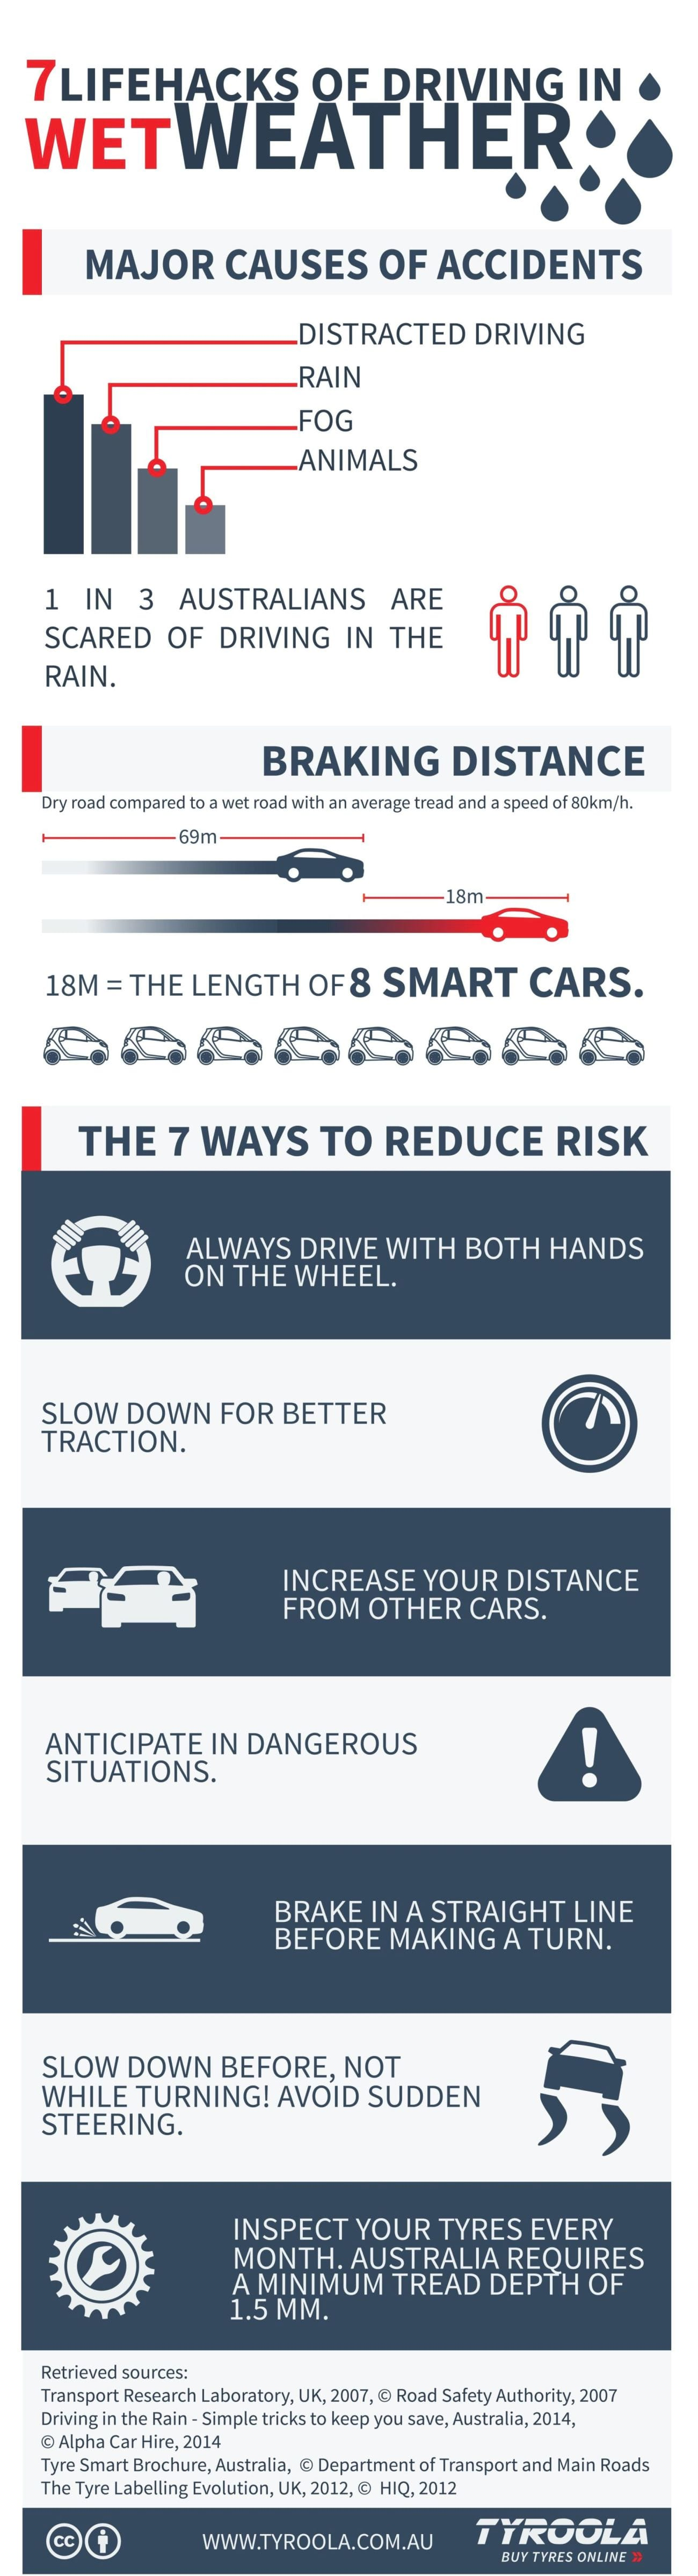 Infographic 7 Lifehacks of Driving in Wet Weather